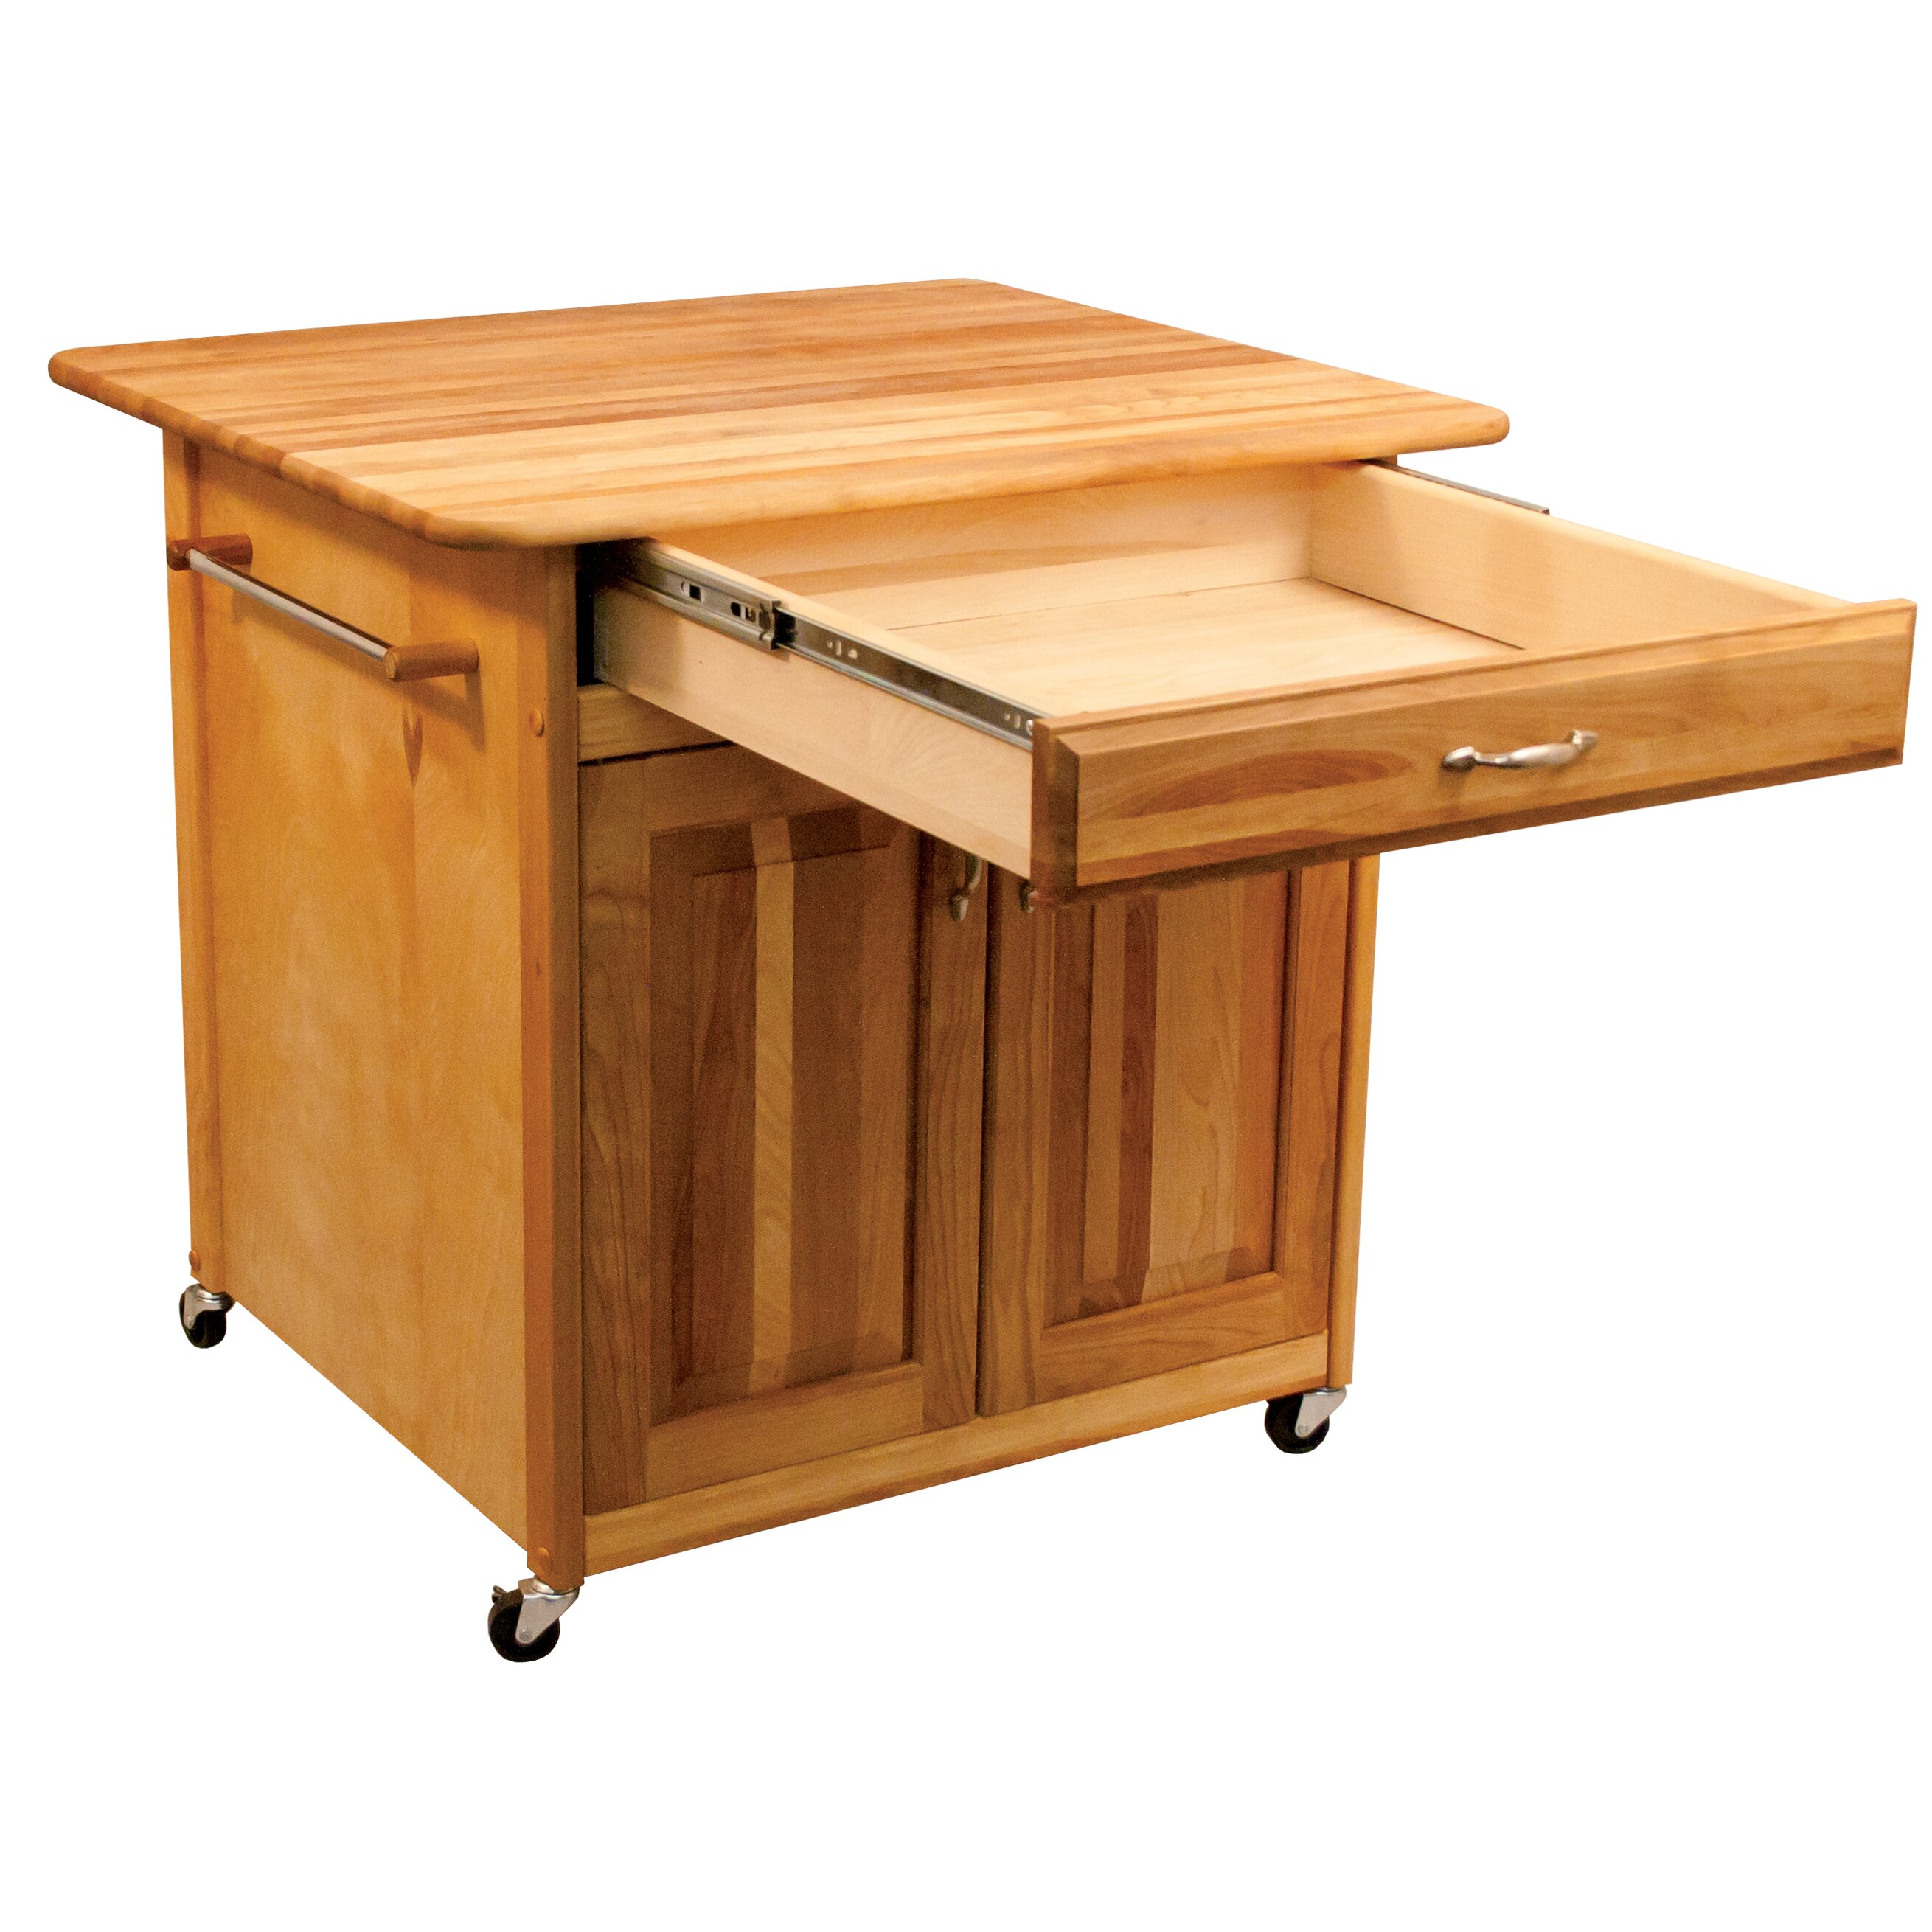 catskill craftsmen kitchen island with butcher block top reviews wayfair. Black Bedroom Furniture Sets. Home Design Ideas